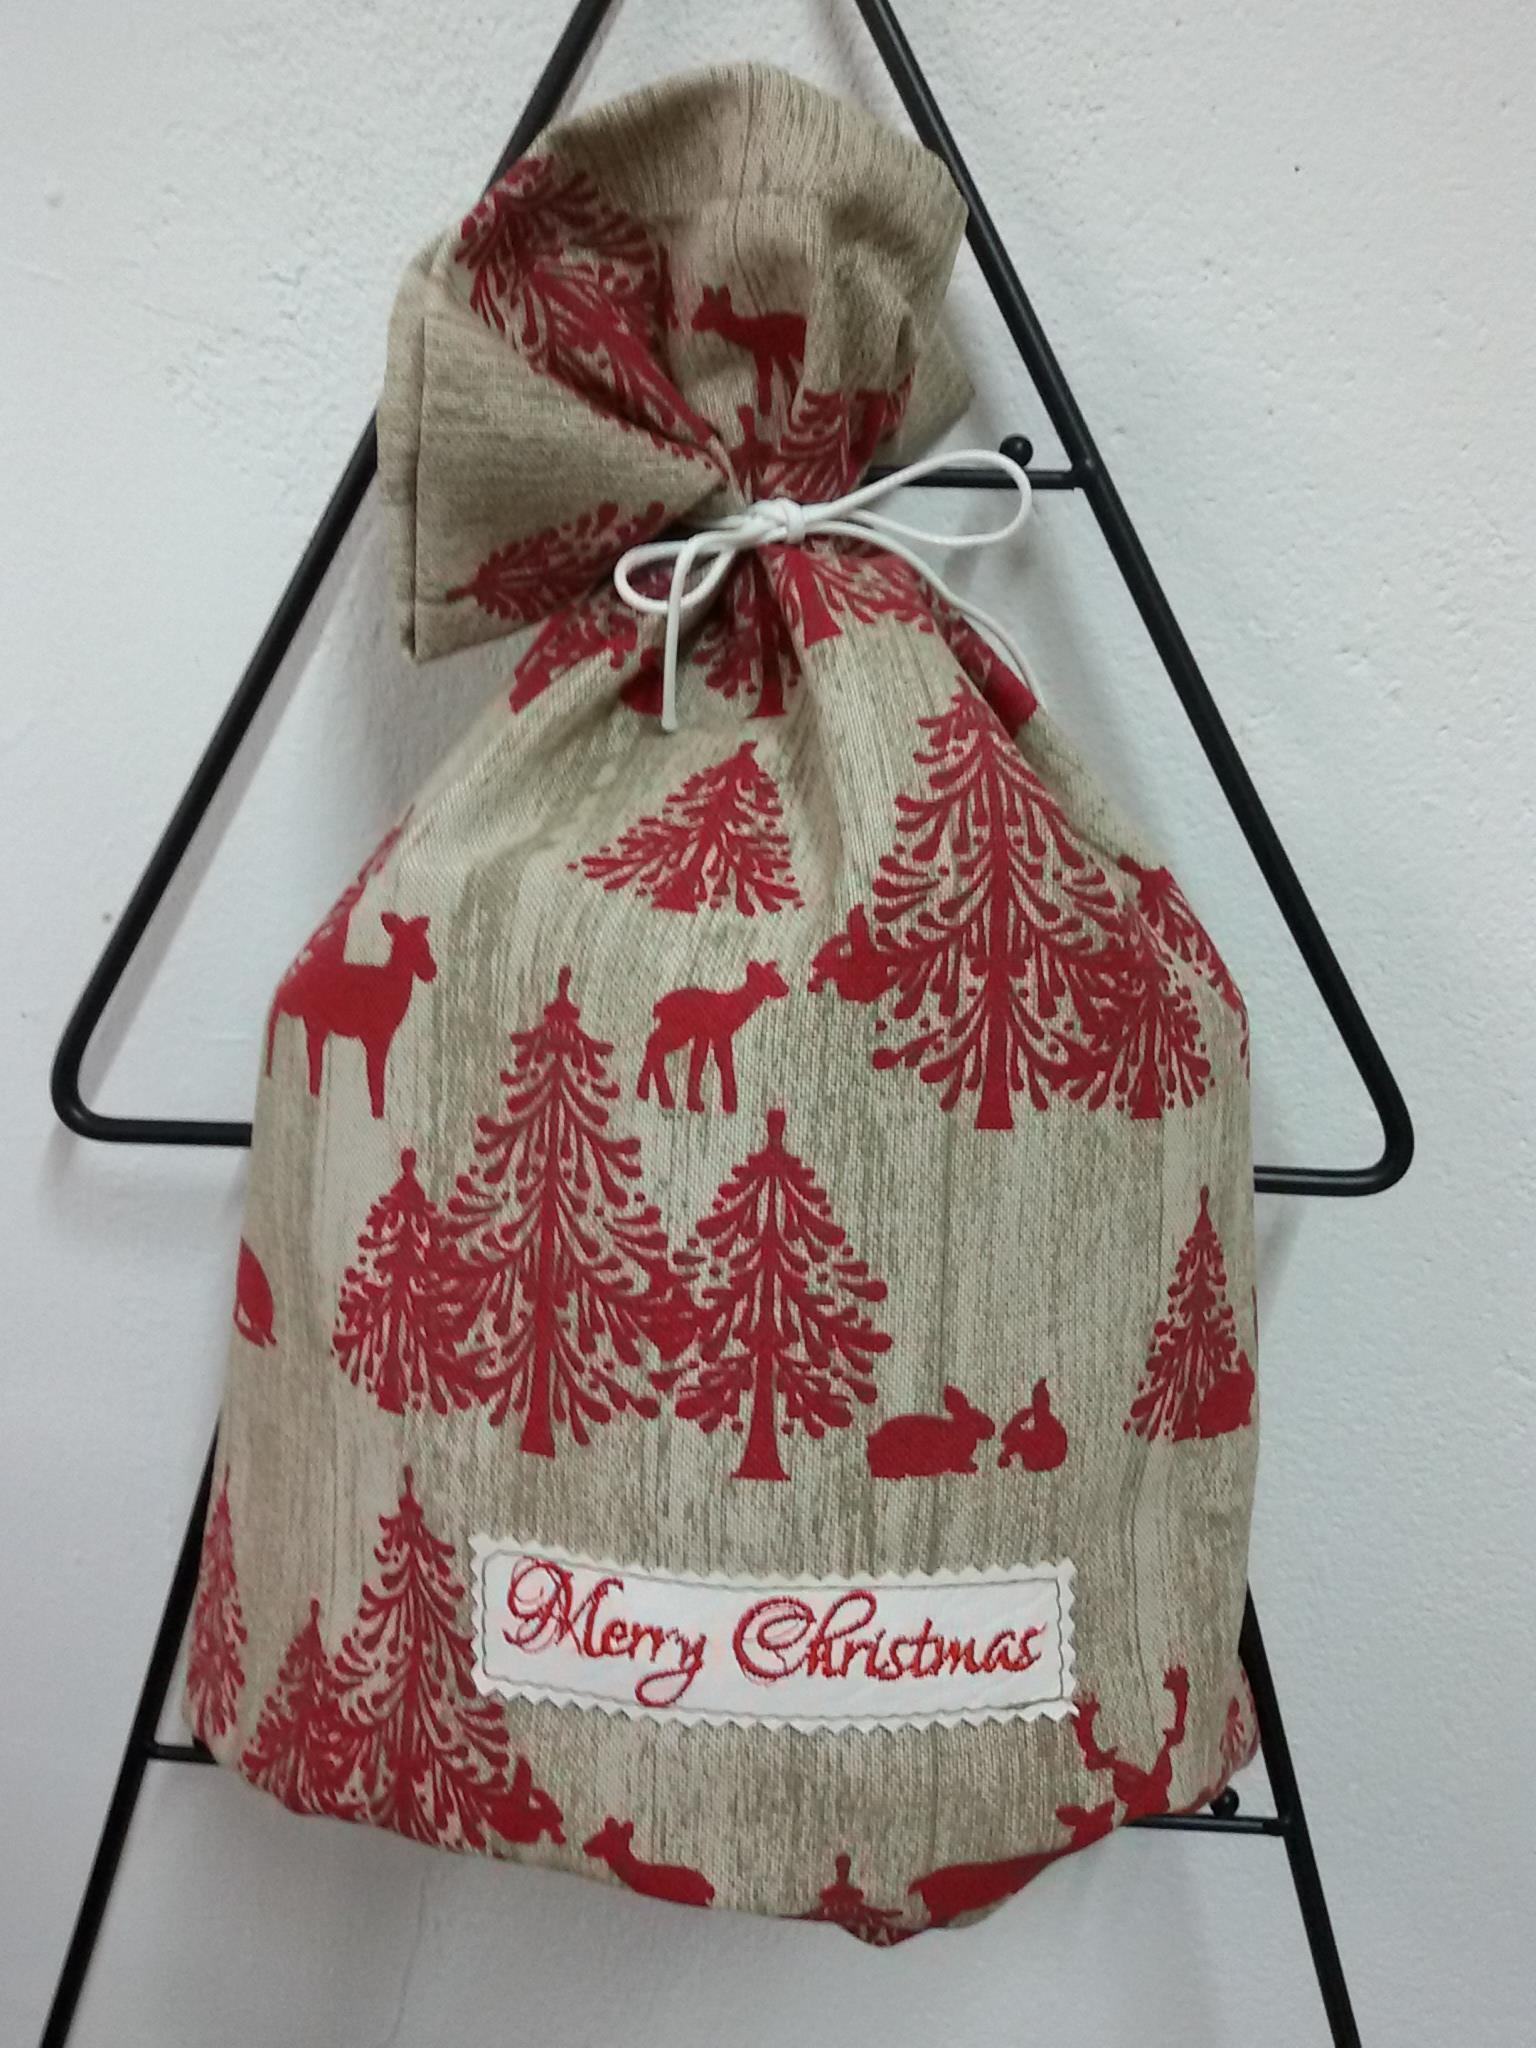 Embroidered gift bag with Merry Christmas free design